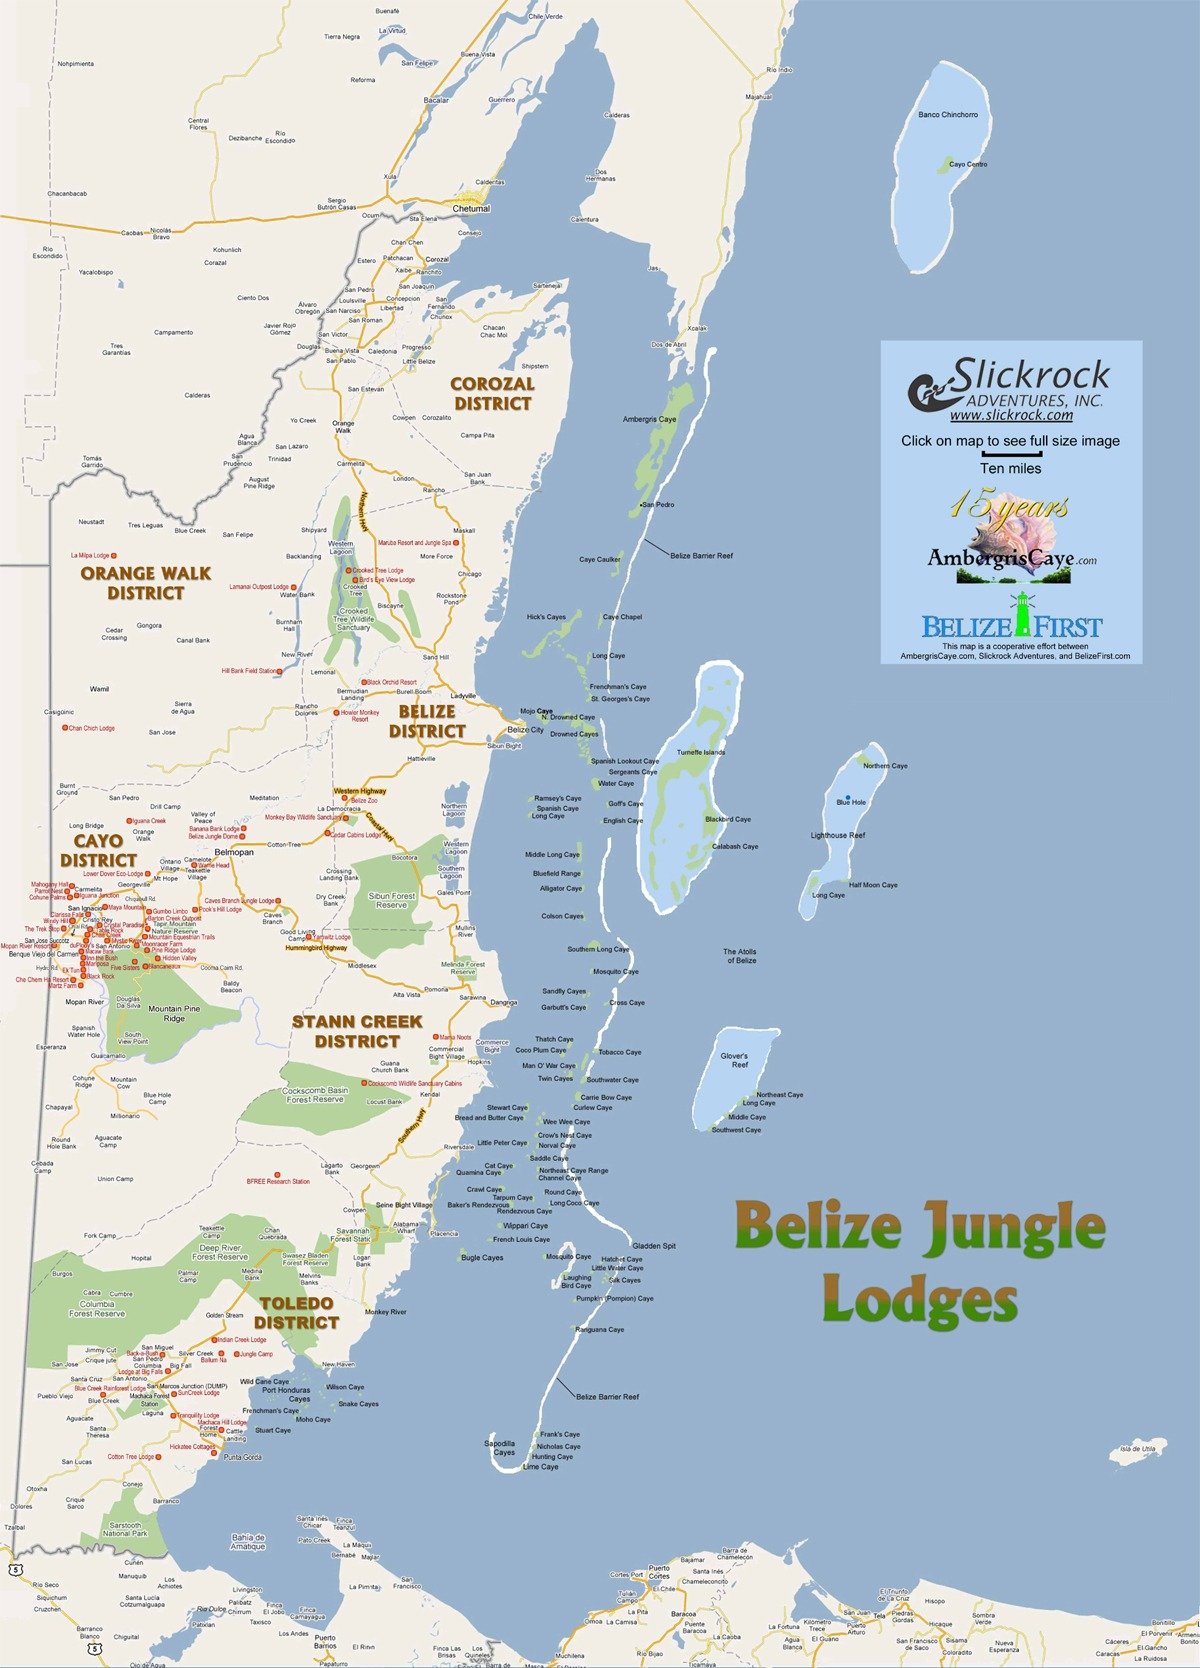 Belize jungle lodges